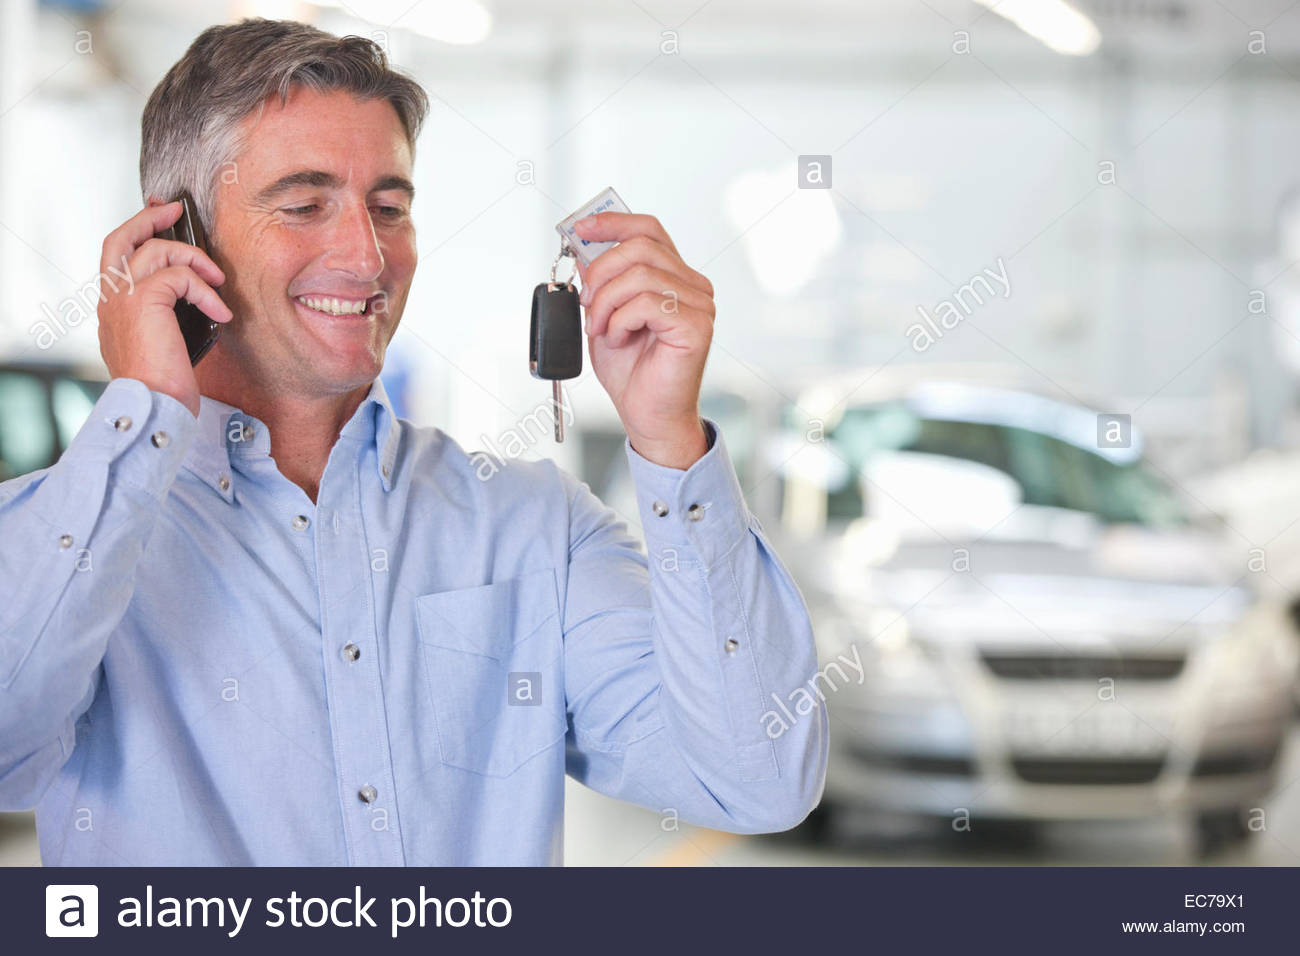 Man on mobile phone holding up car keys of new car Stock Photo